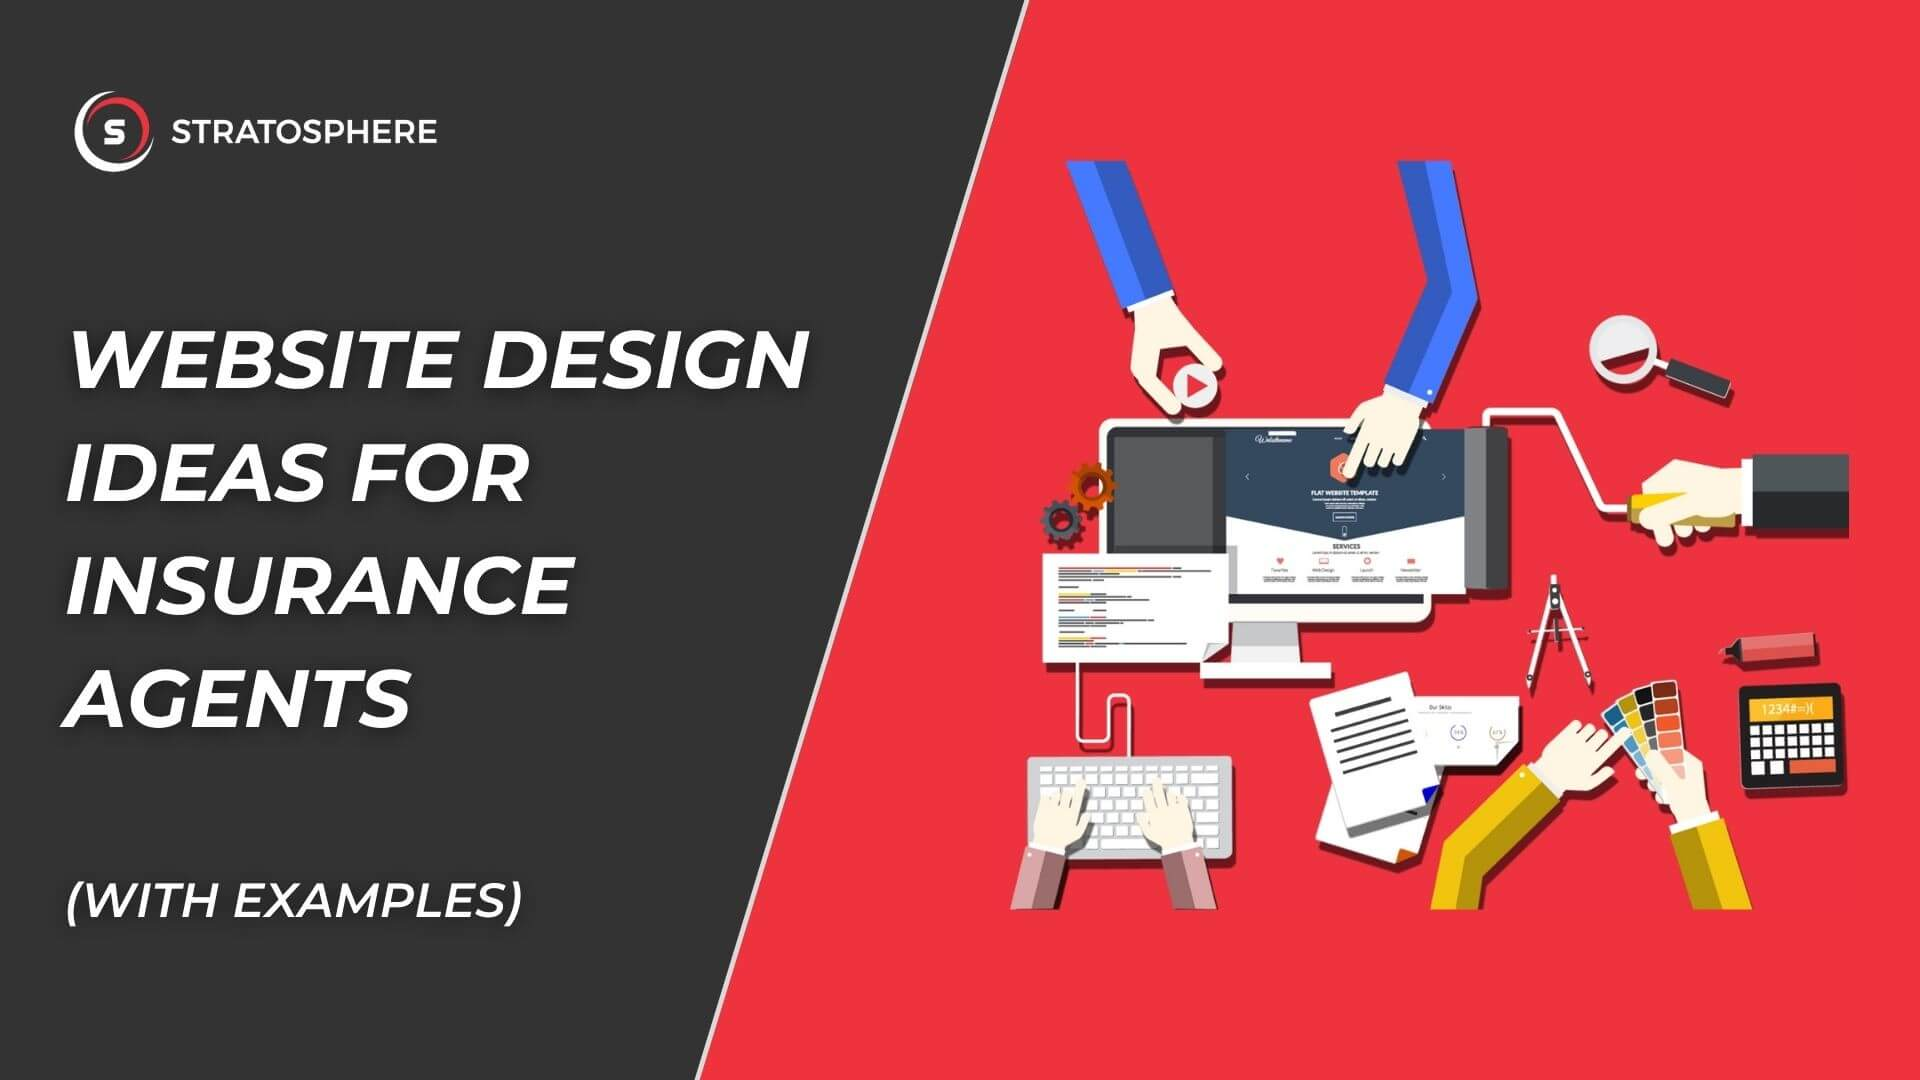 11 Website Design Ideas for Insurance Agents [with Examples]